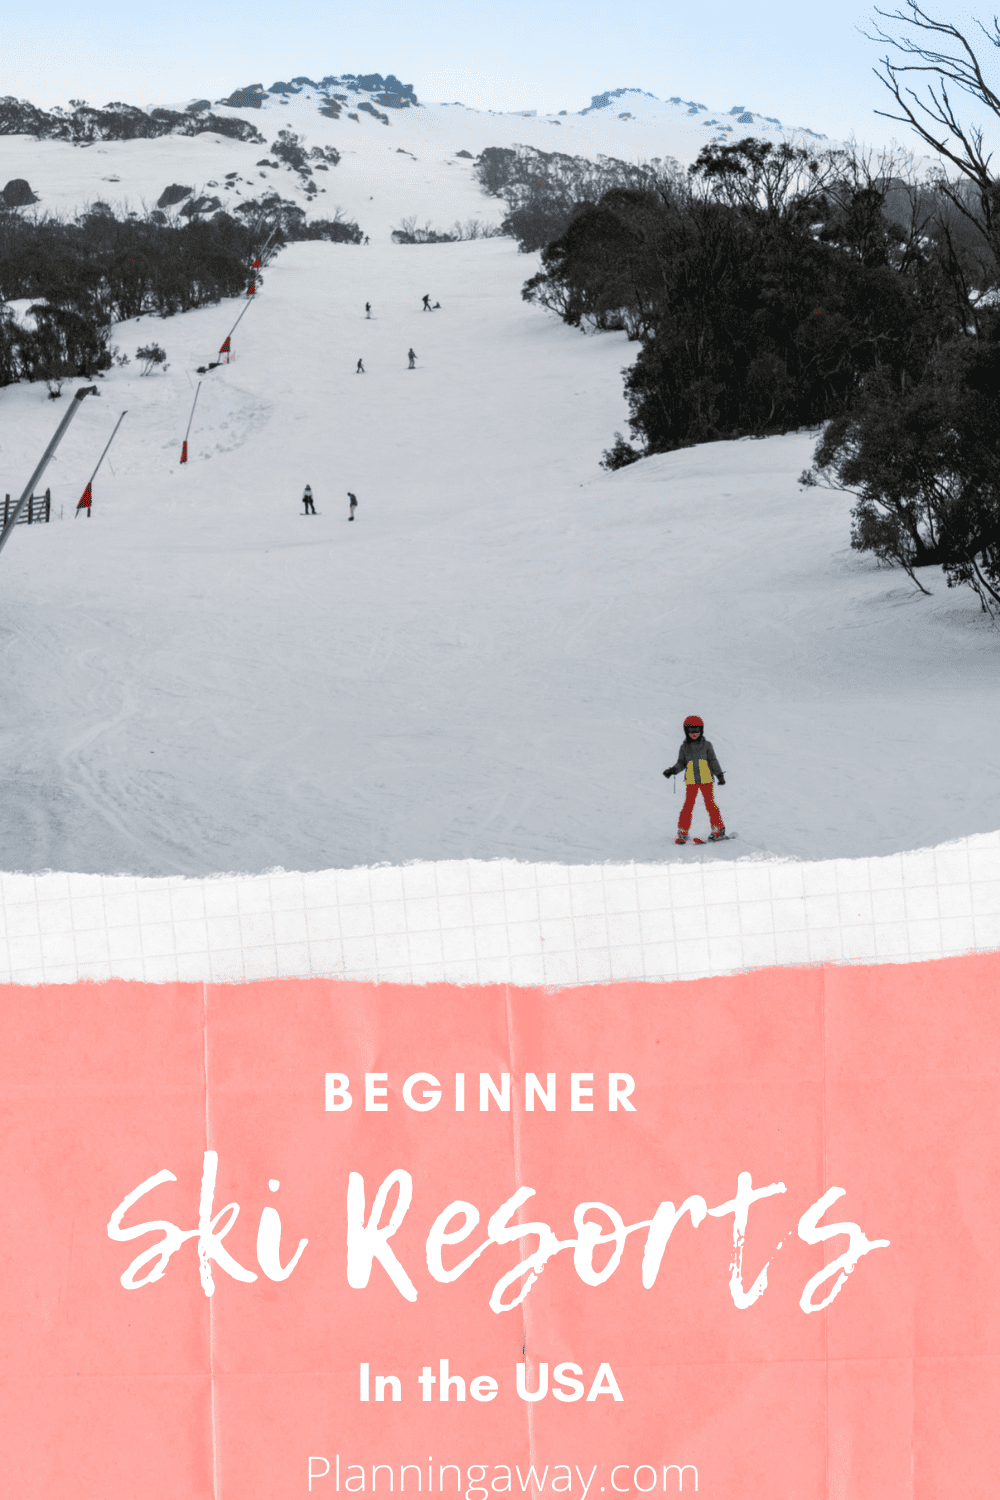 Beginner Ski Resorts in the USA